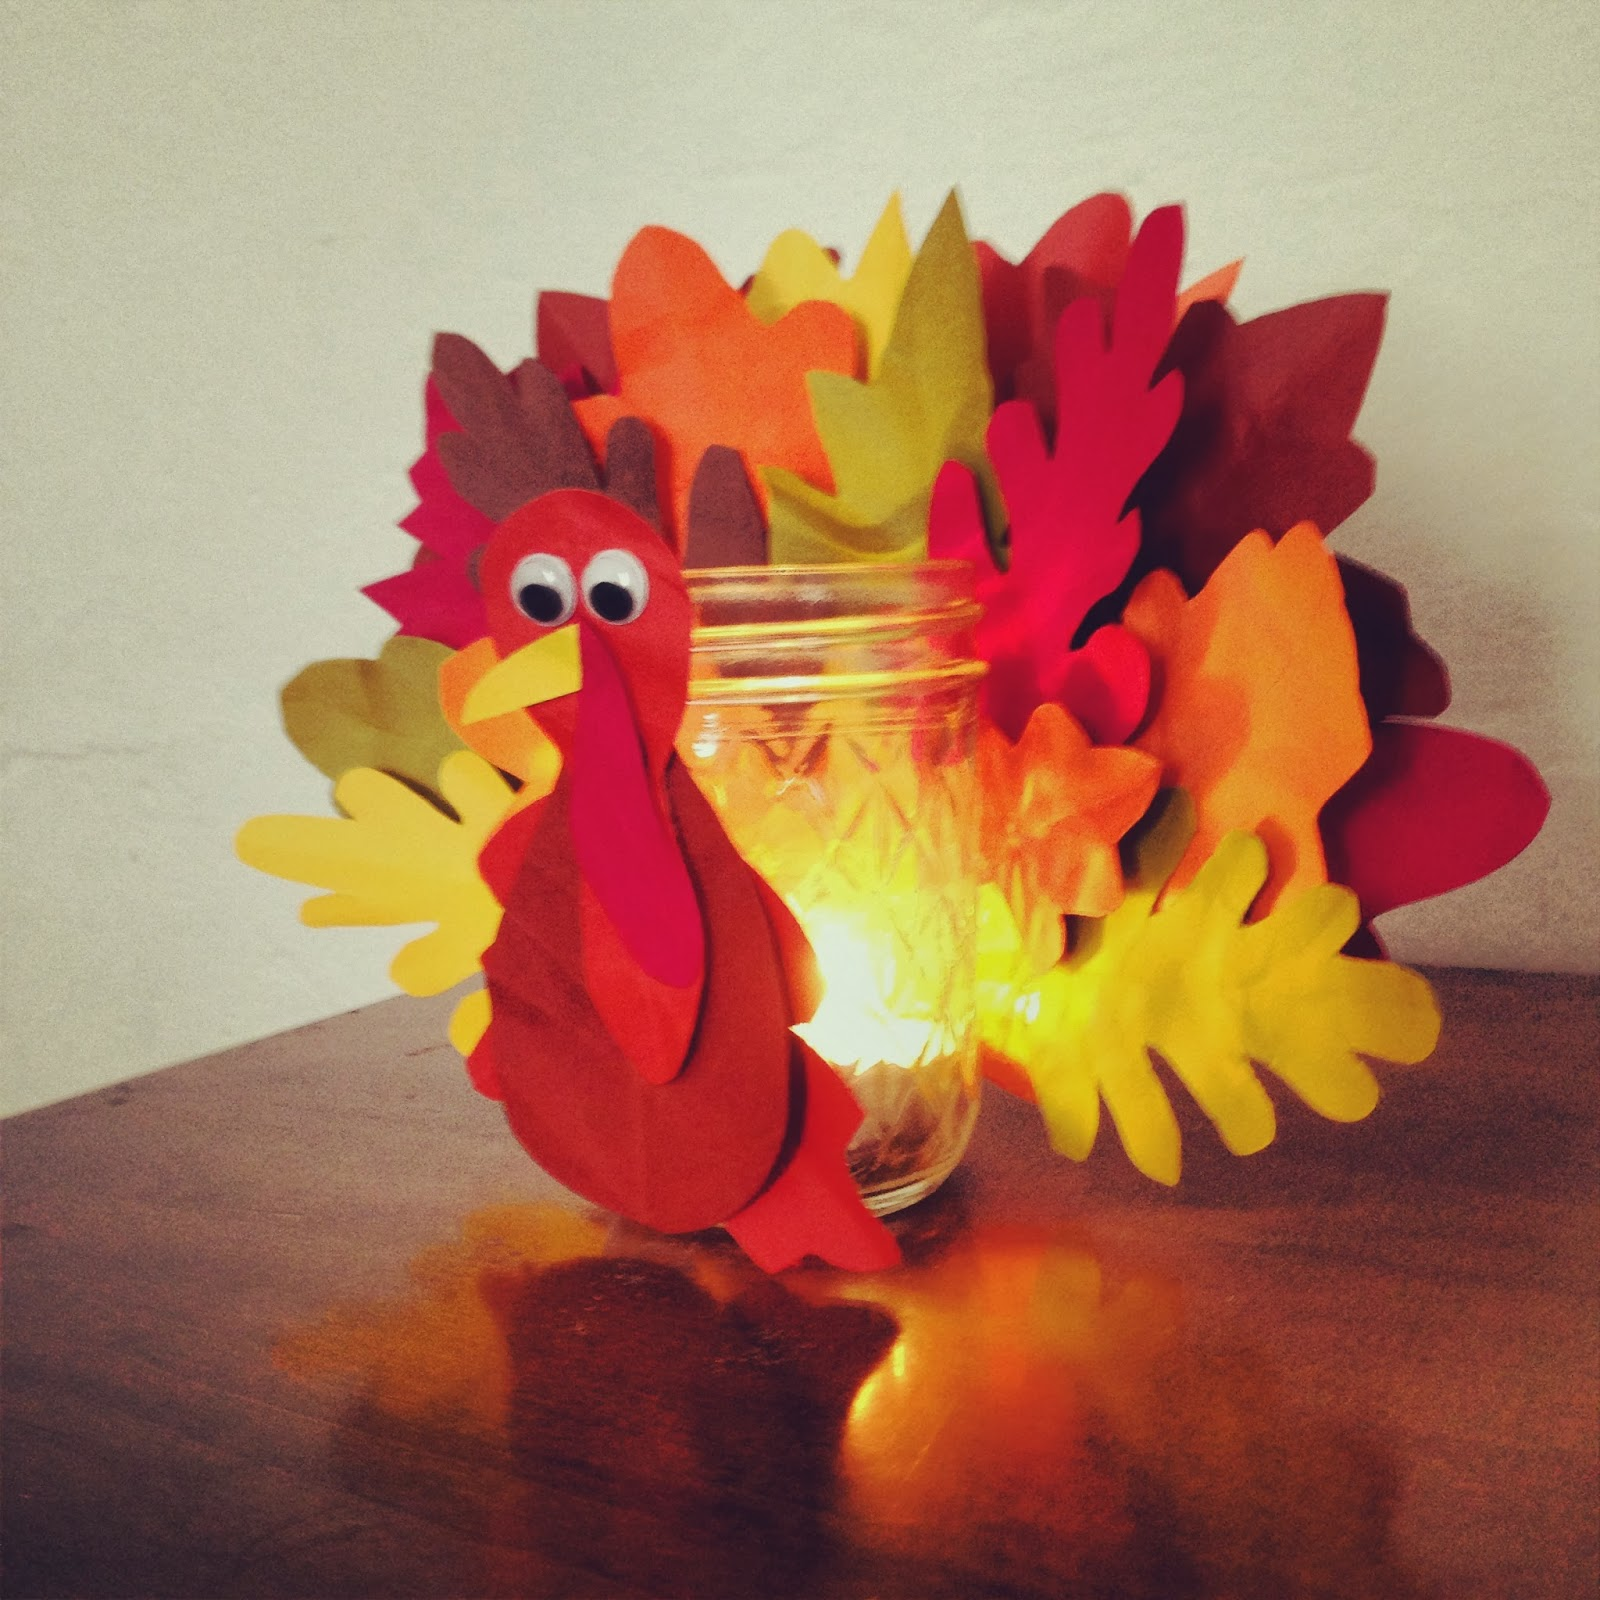 This turkey candleholder is just one of the adorable Thanksgiving turkey crafts you can make with leaves. Click to find links and instructions for them all.